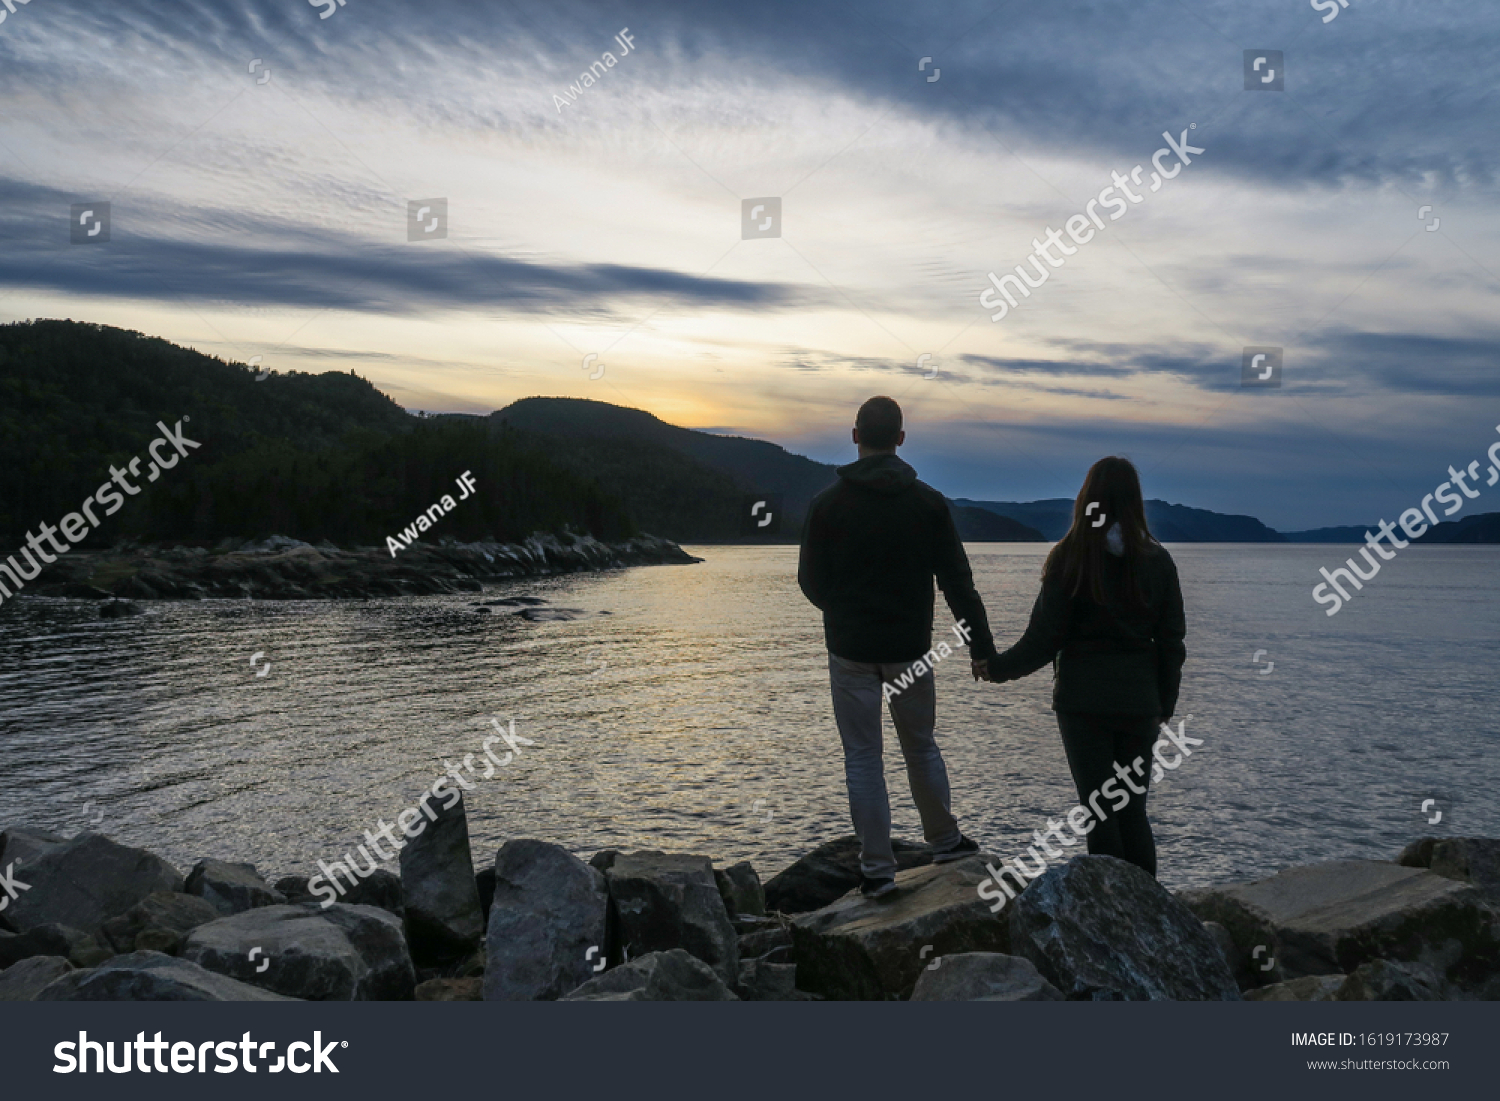 stock-photo-back-view-of-a-young-couple-